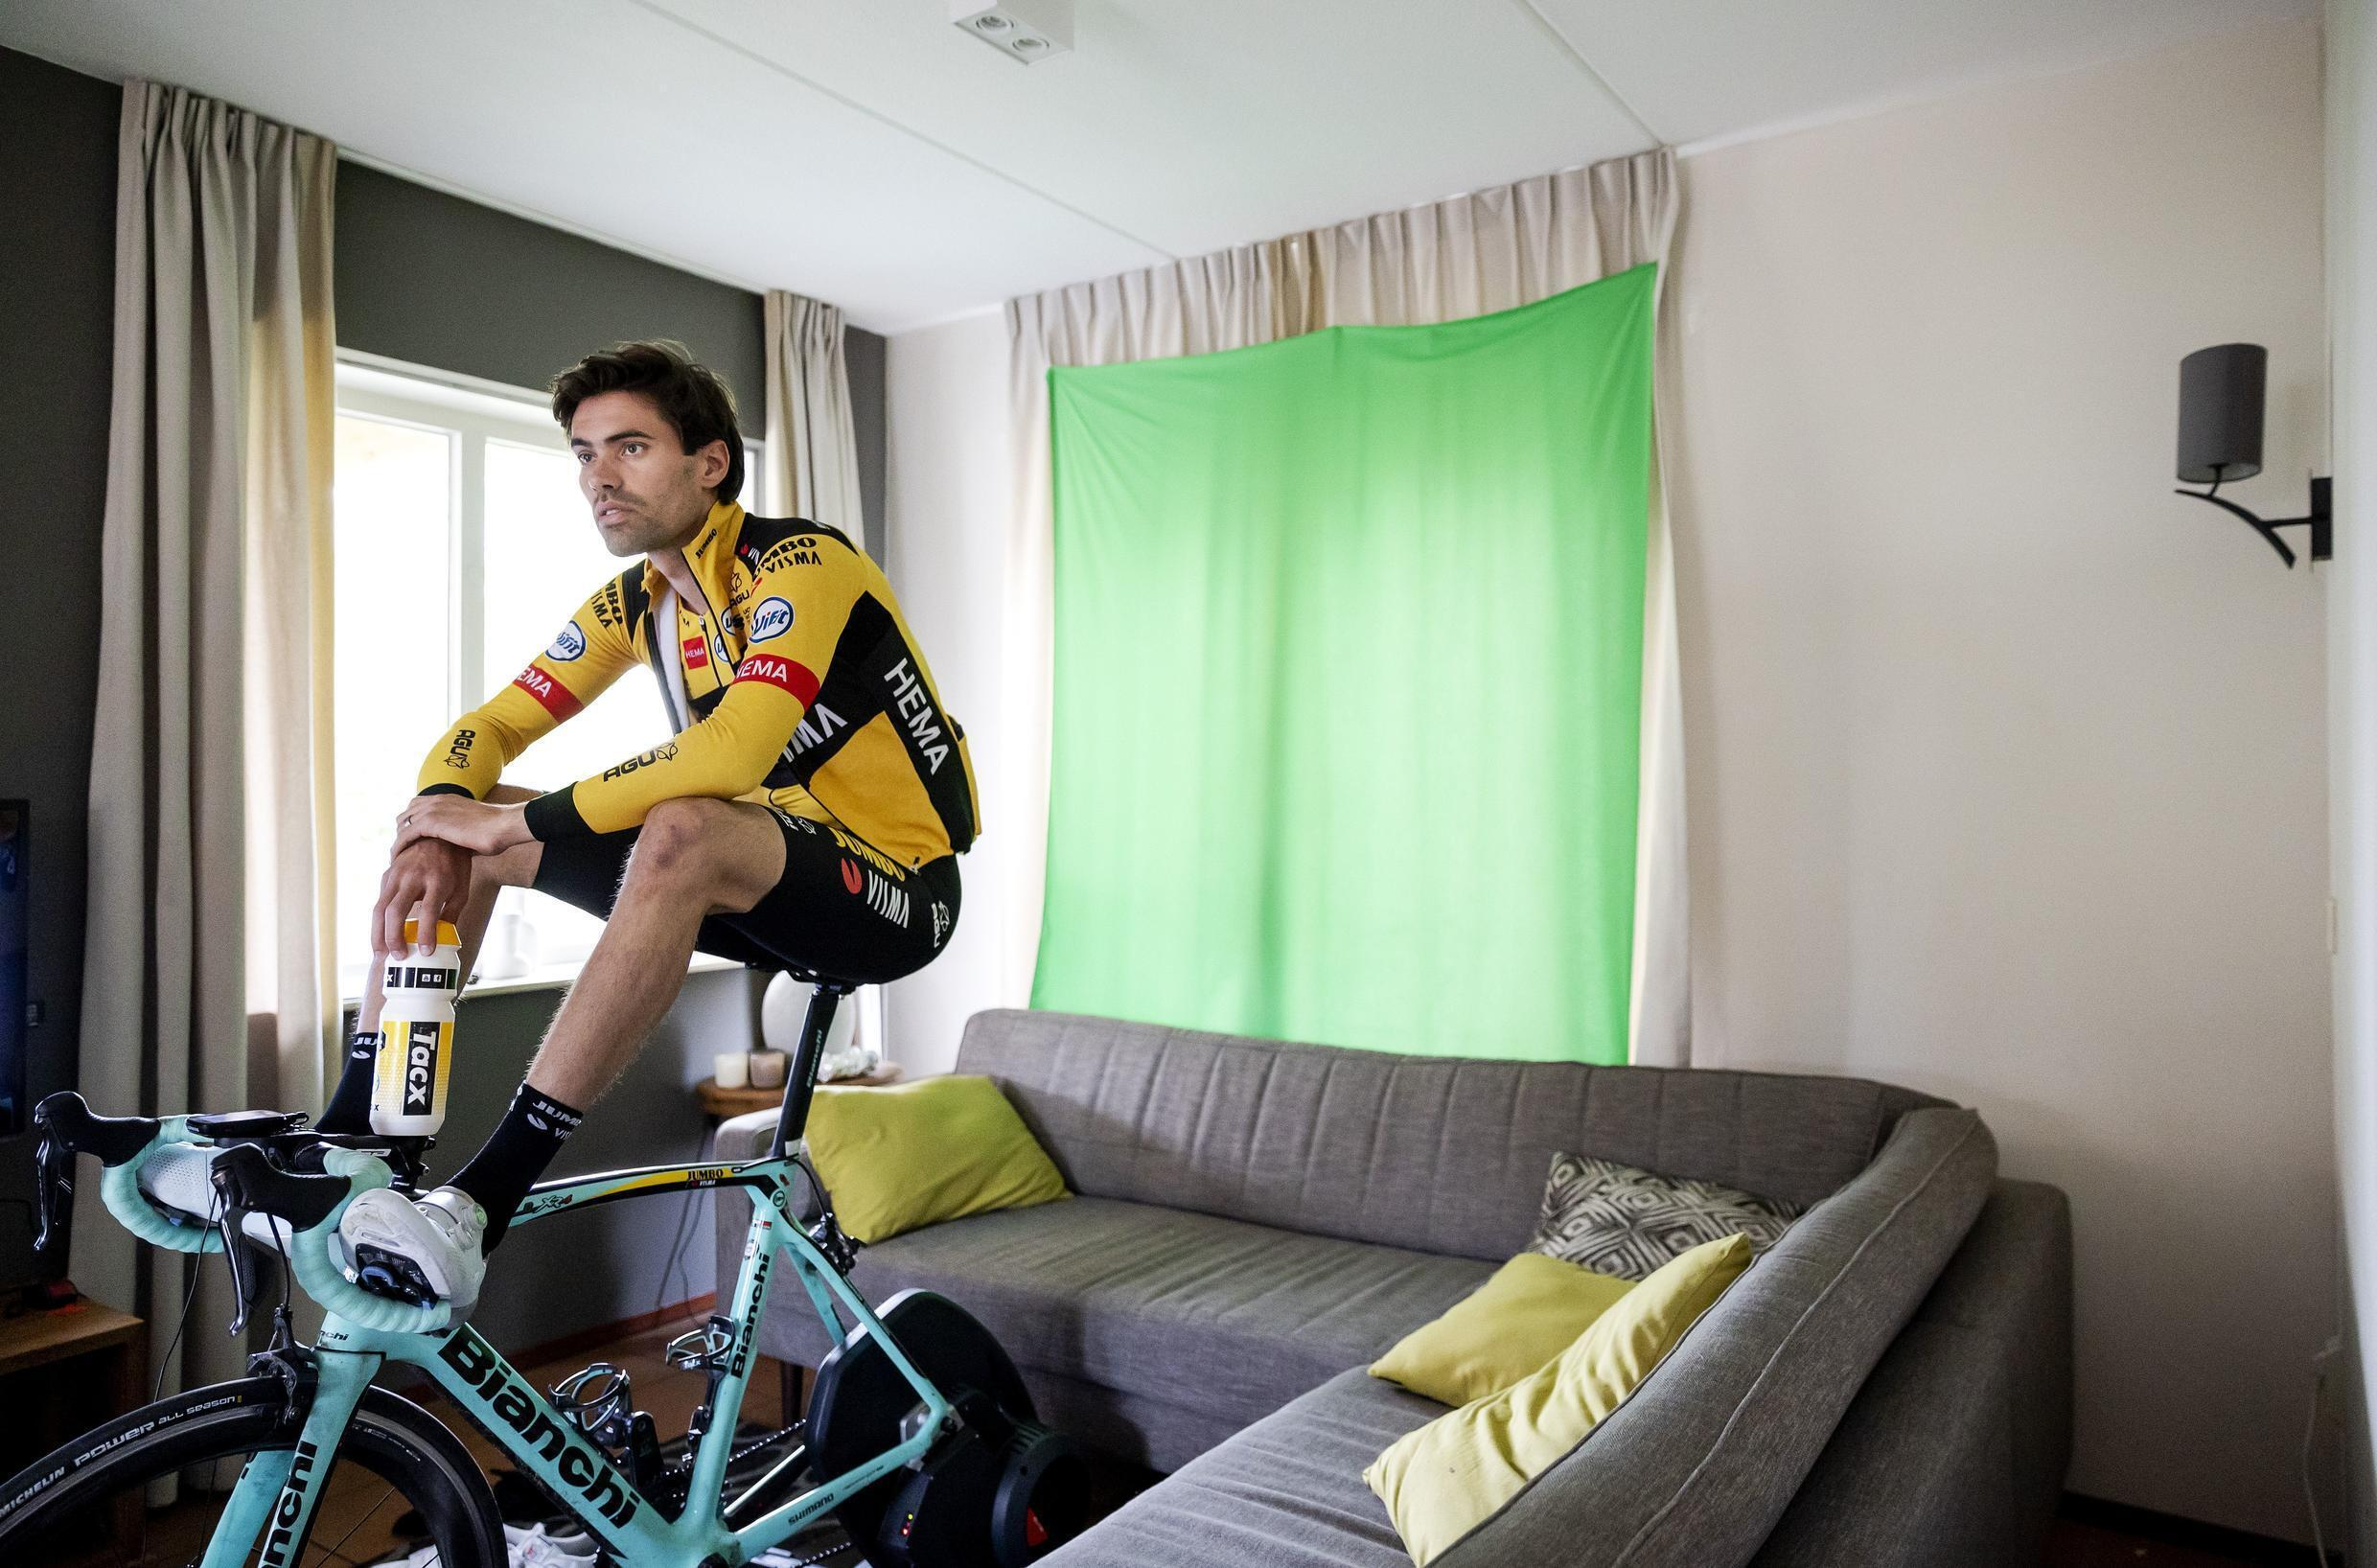 Tom Dumoulin of Jumbo-Visma waiting for the virtual Amstel Gold race to start